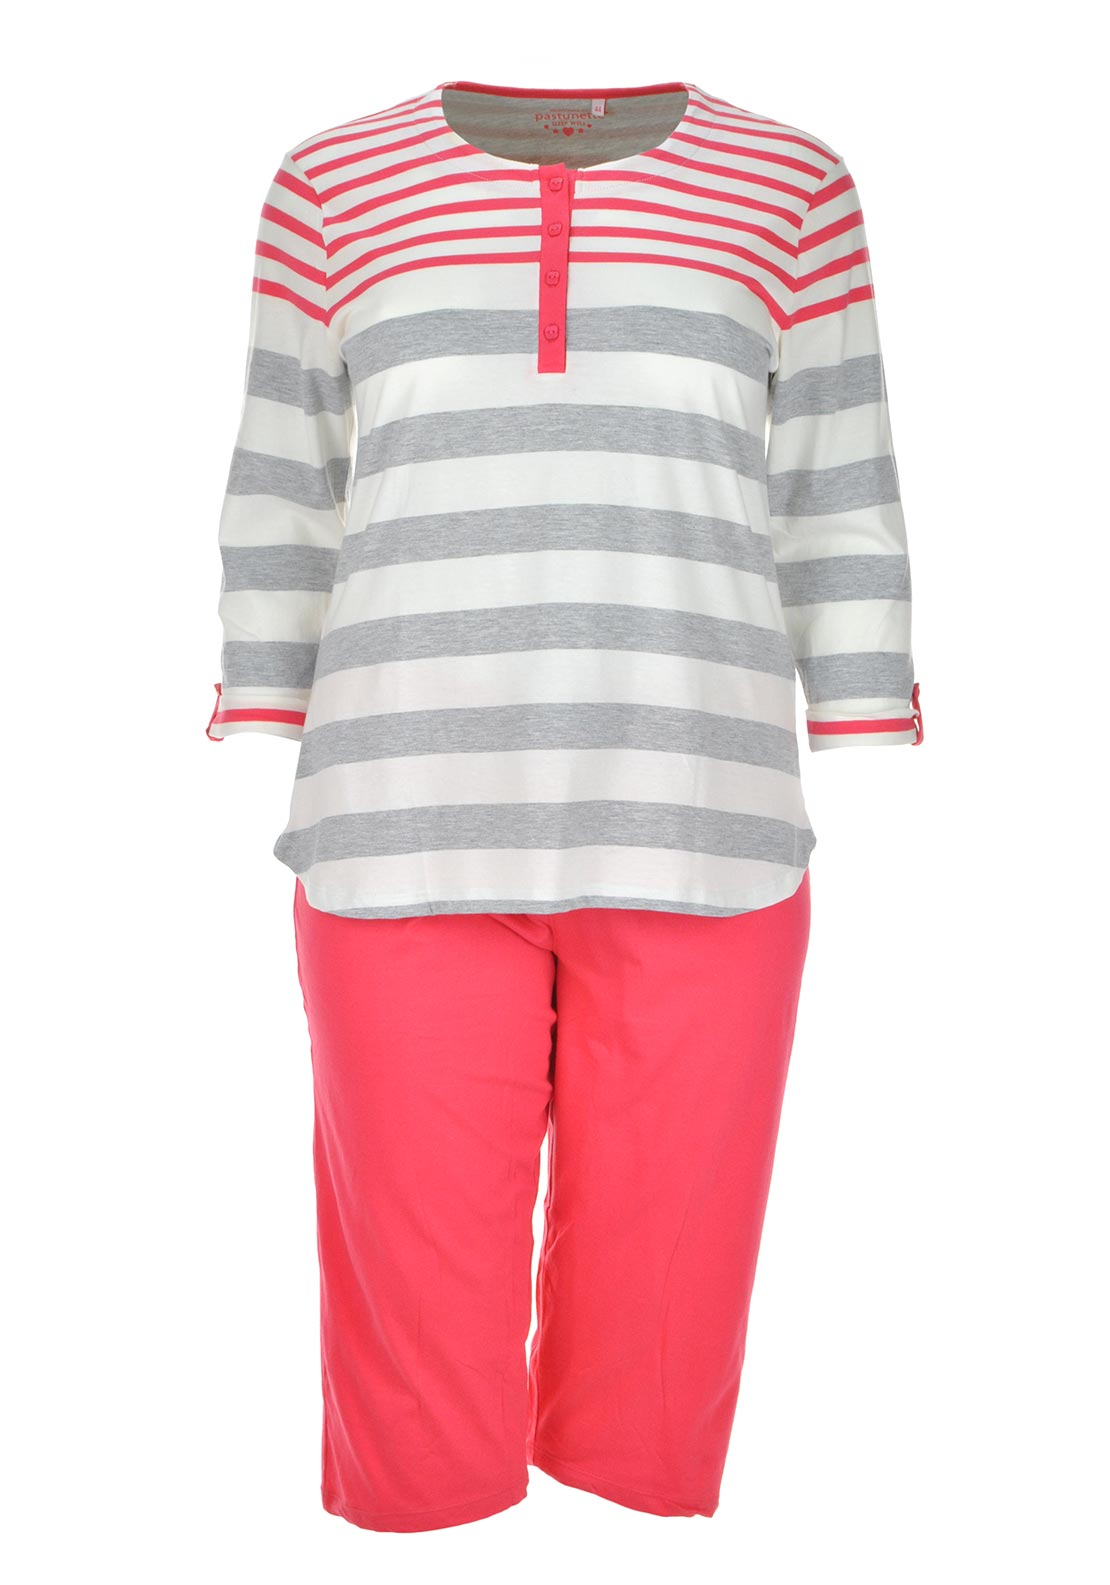 Pastunette Striped Pyjama Set, Coral and Grey